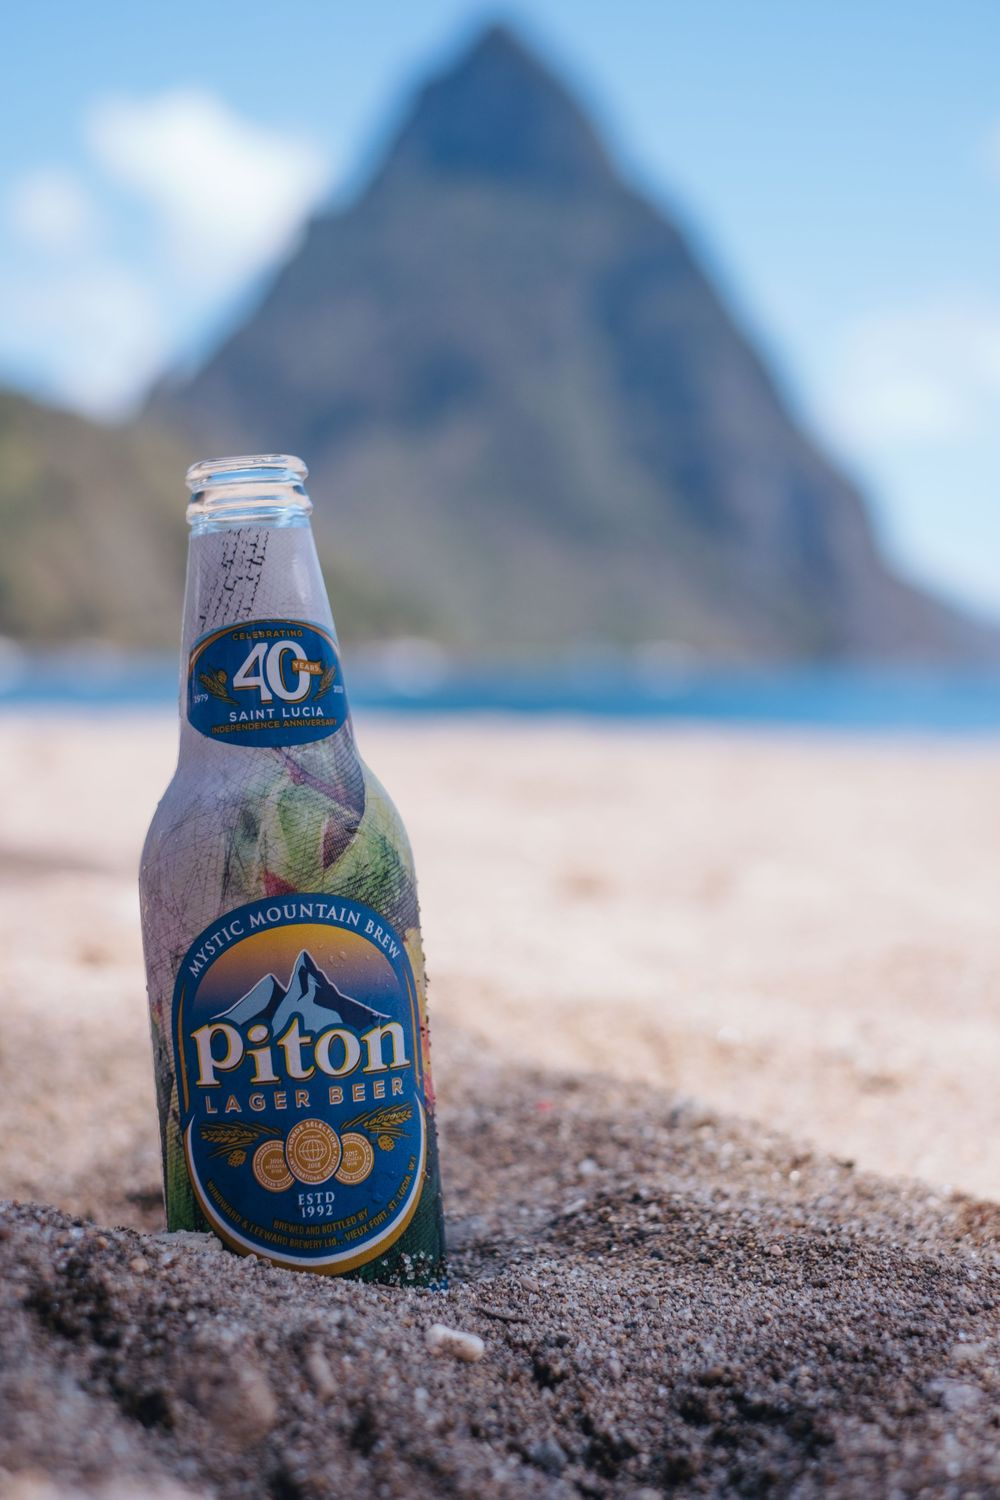 piton beer in the sand, piton in the background